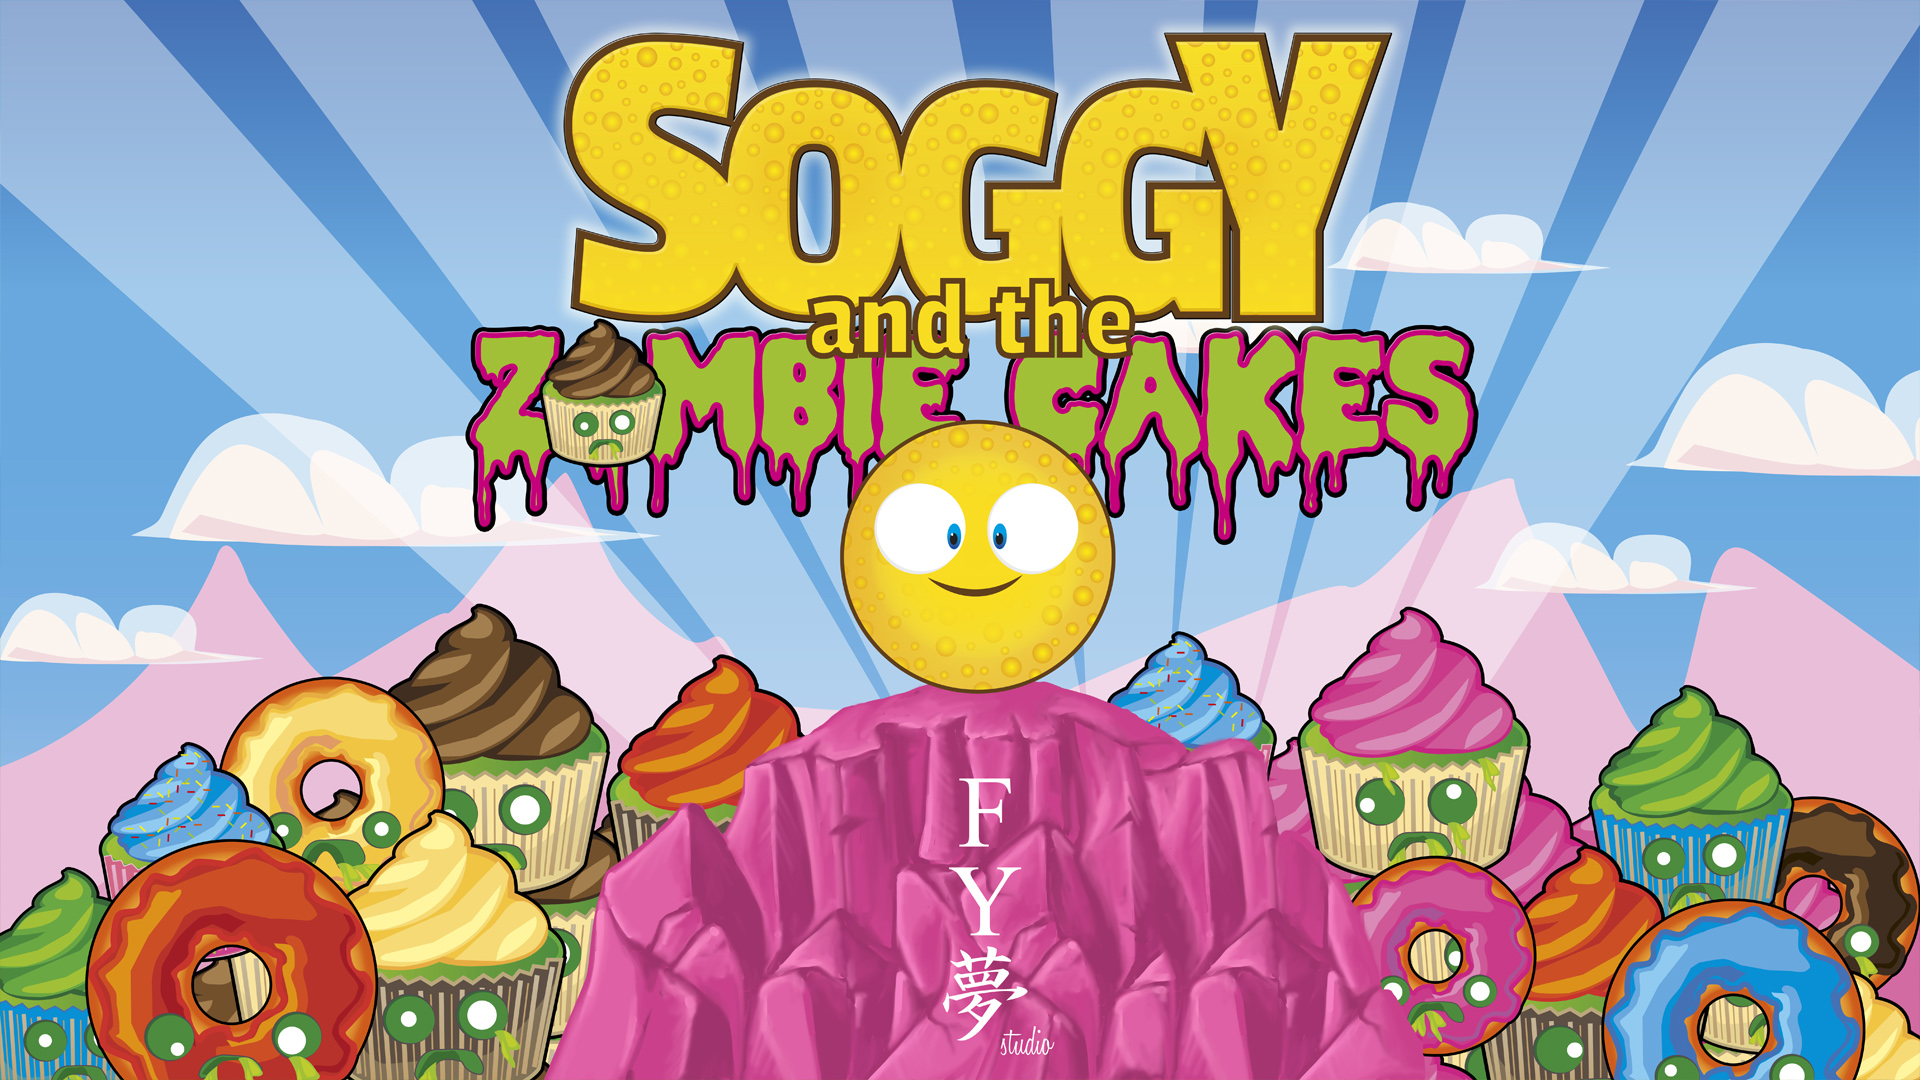 SOGGY and the ZOMBIE CAKES